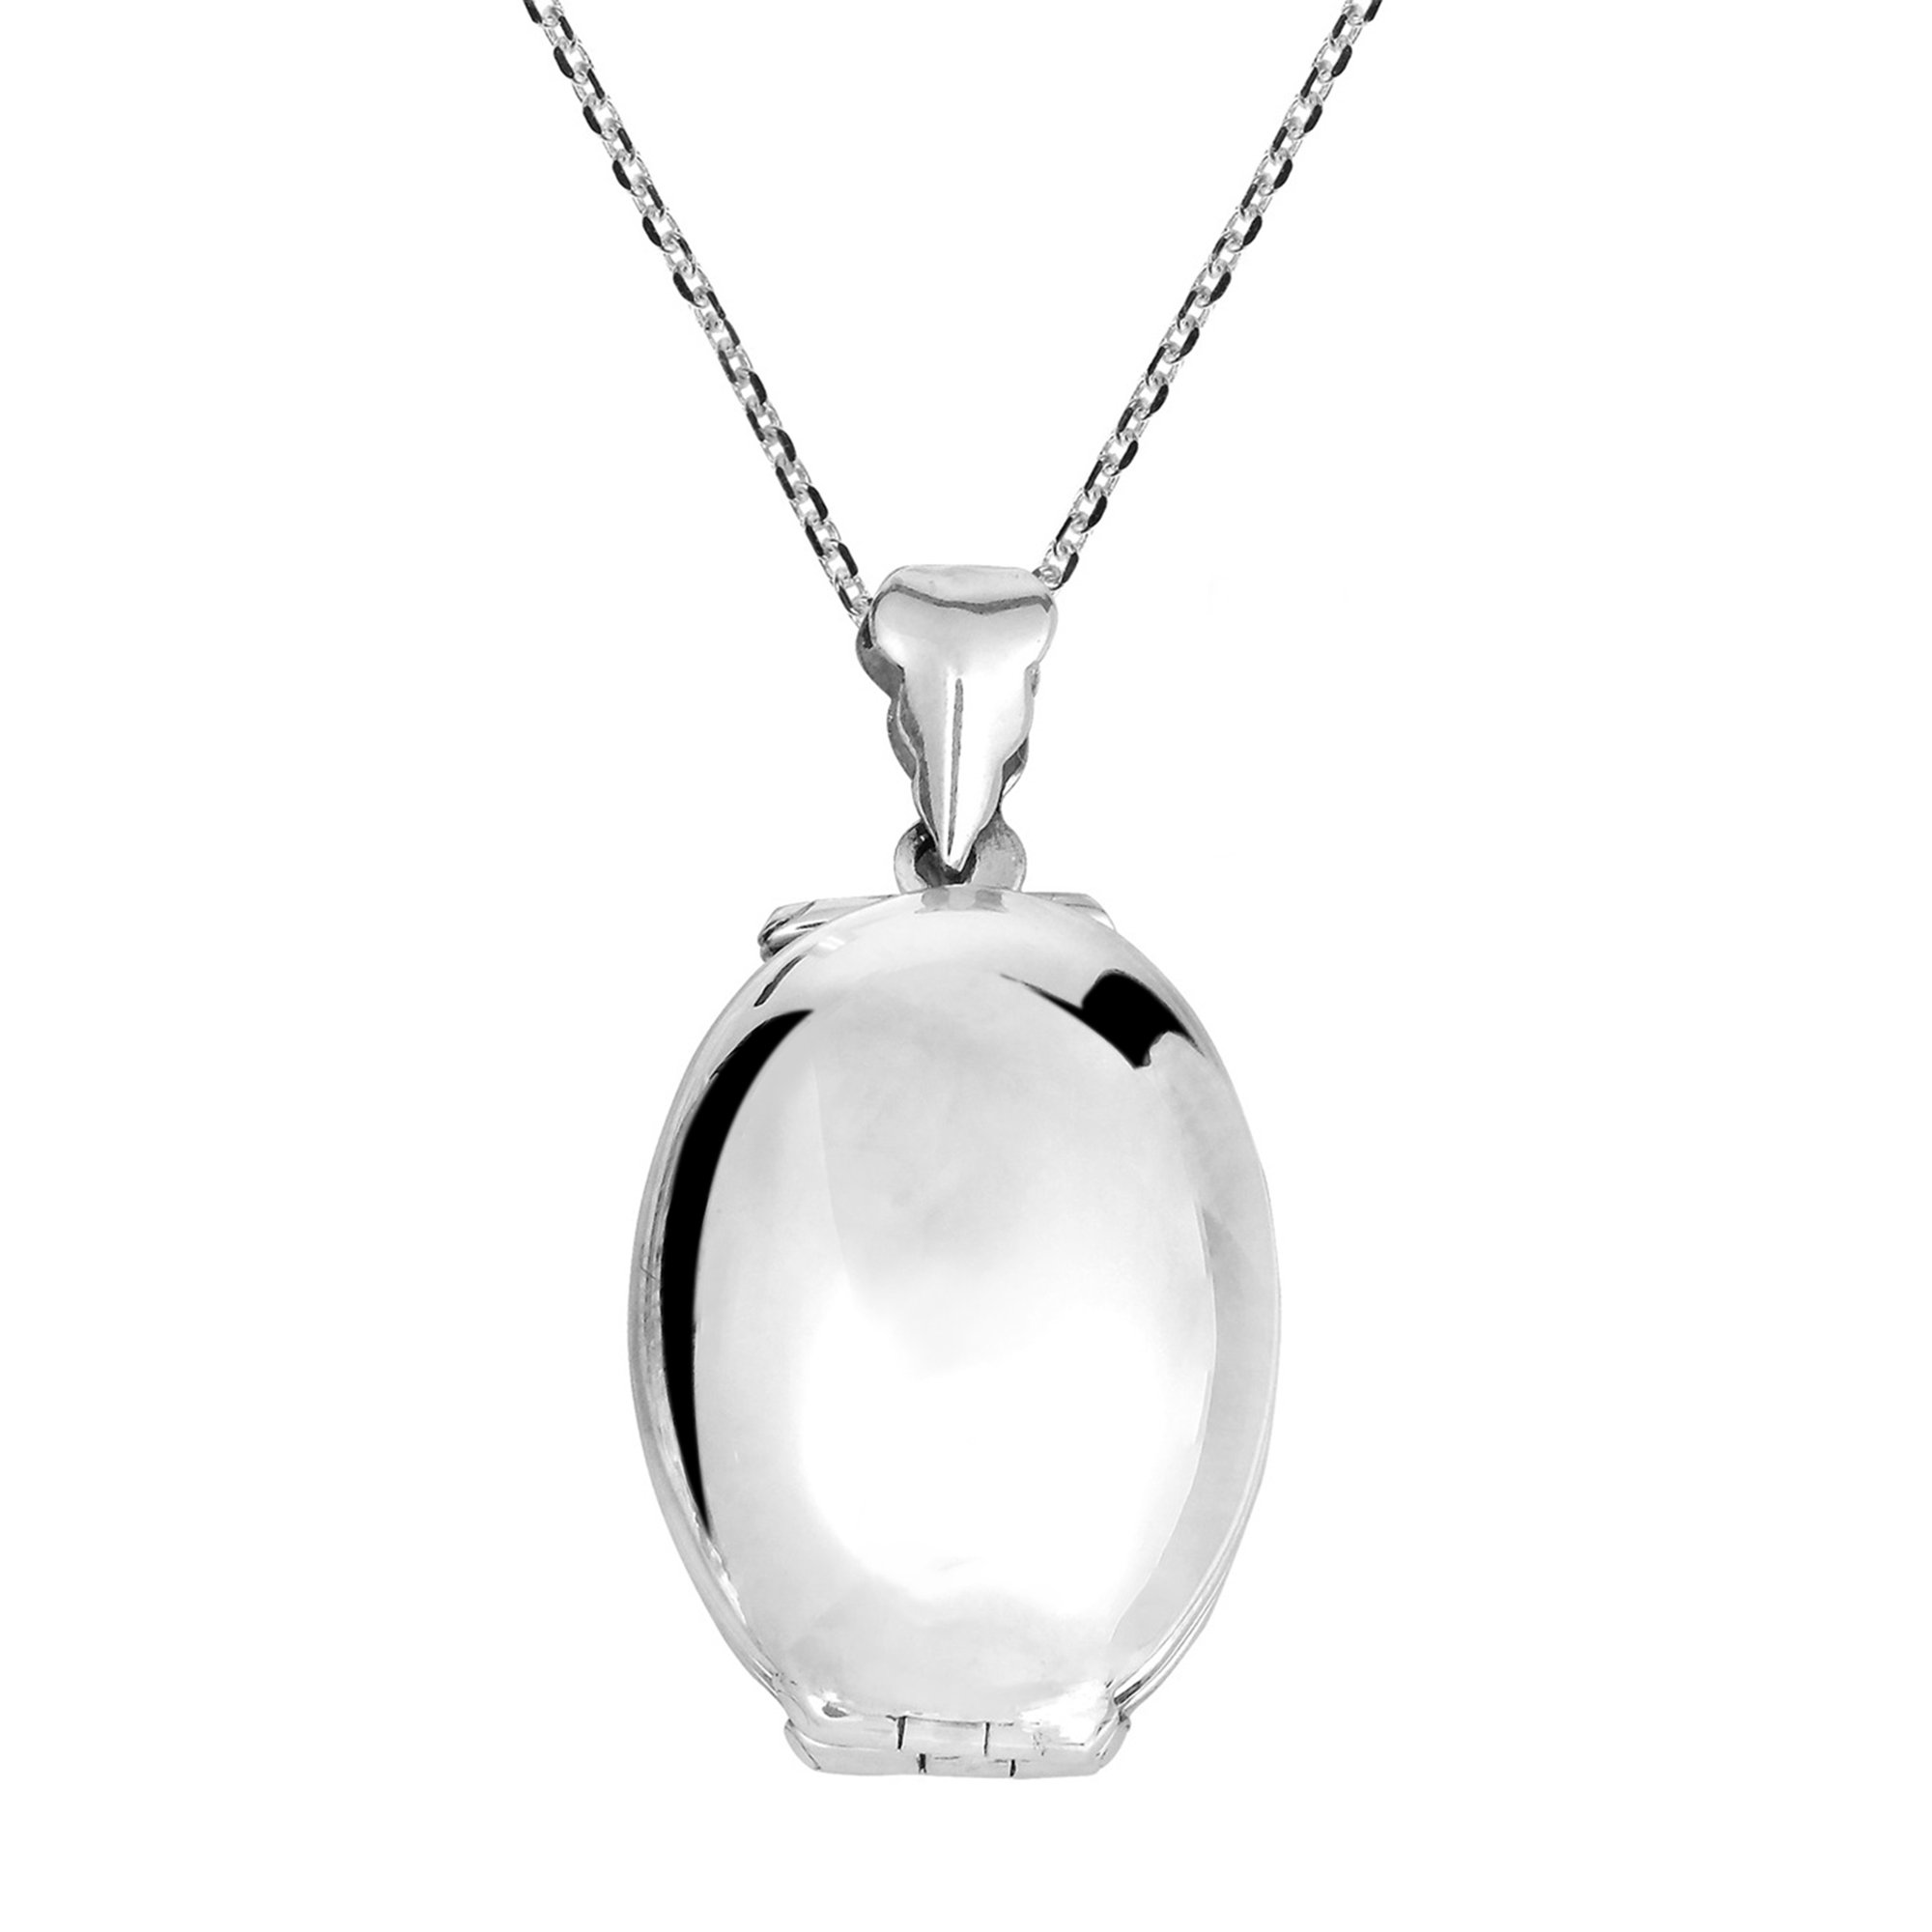 AeraVida Four Sided Connected Family Oval Locket .925 Sterling Silver Necklace by AeraVida